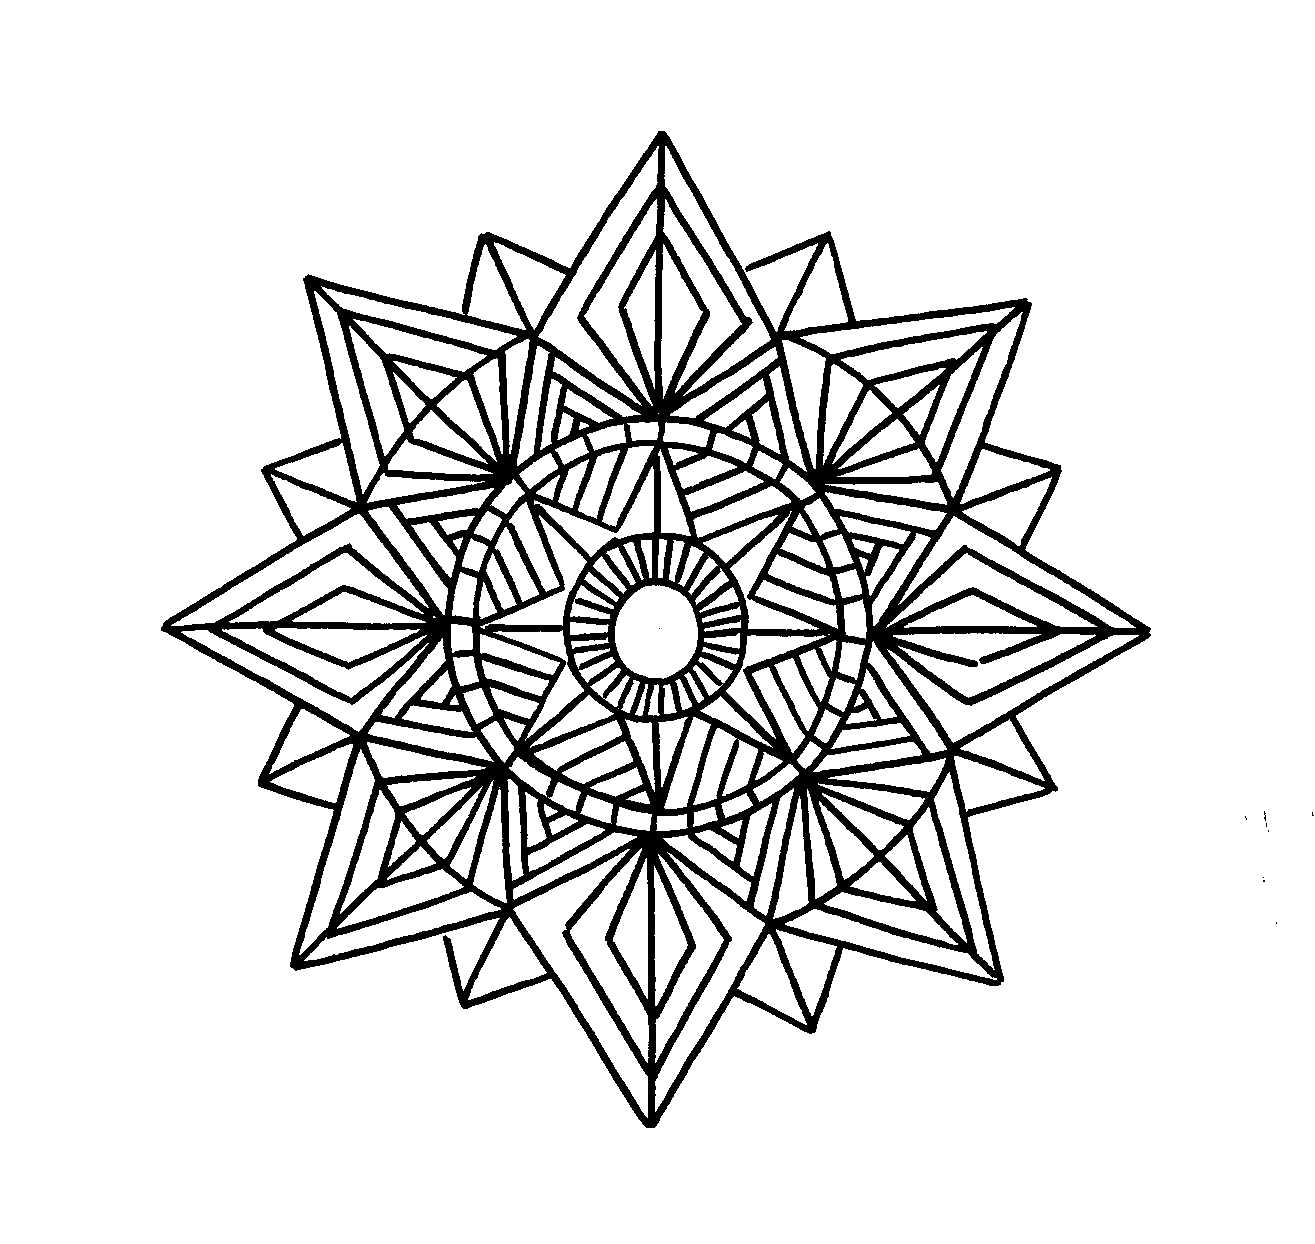 geometric printable coloring pages - Geometric Coloring Pages